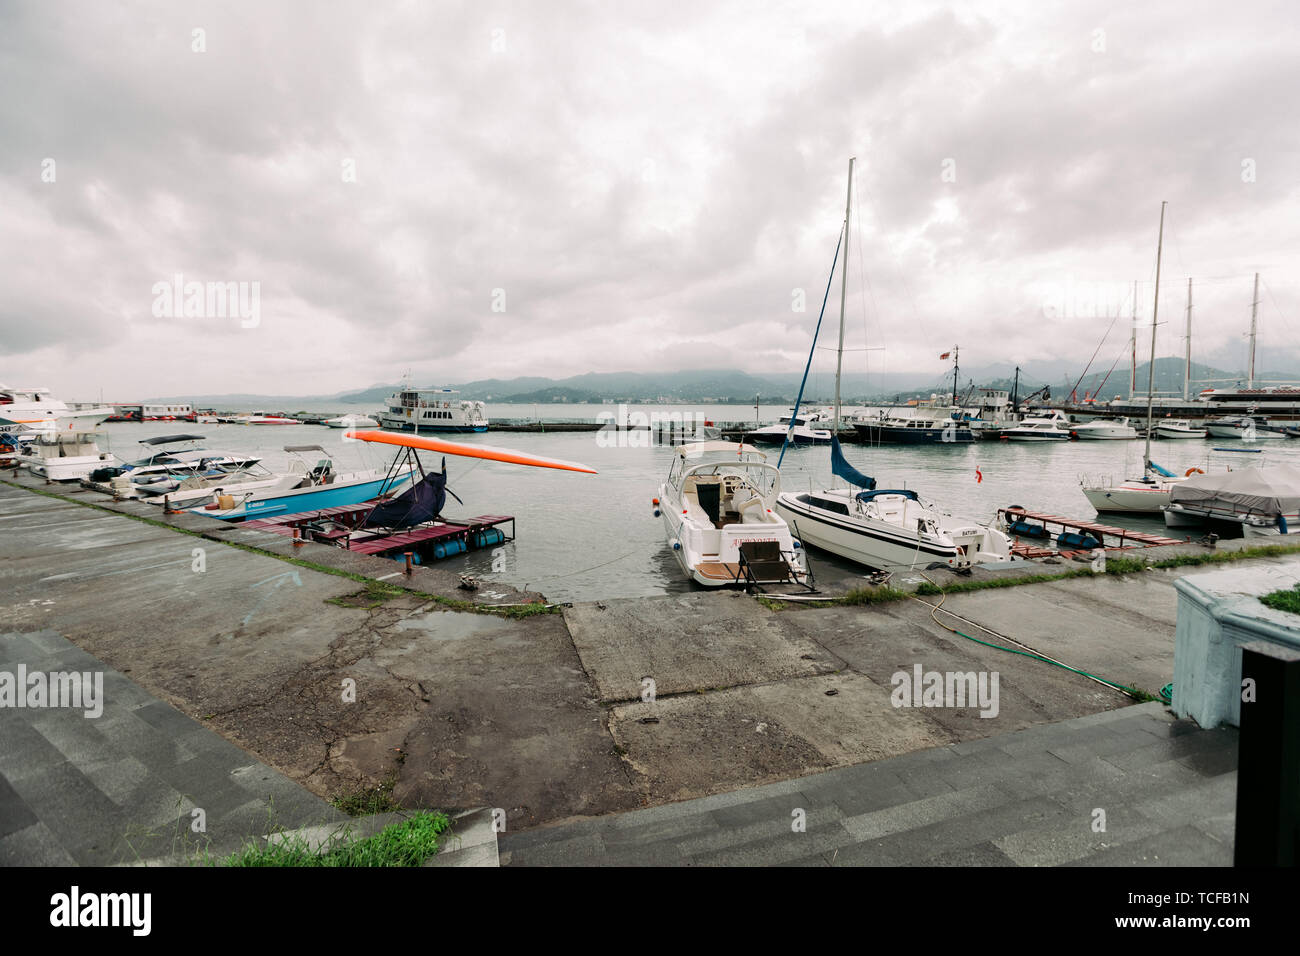 BATUMI, GEORGIA - September 10, 2018: moored in port pleasure boats in the daytime in Batumi, Georgia - Stock Image